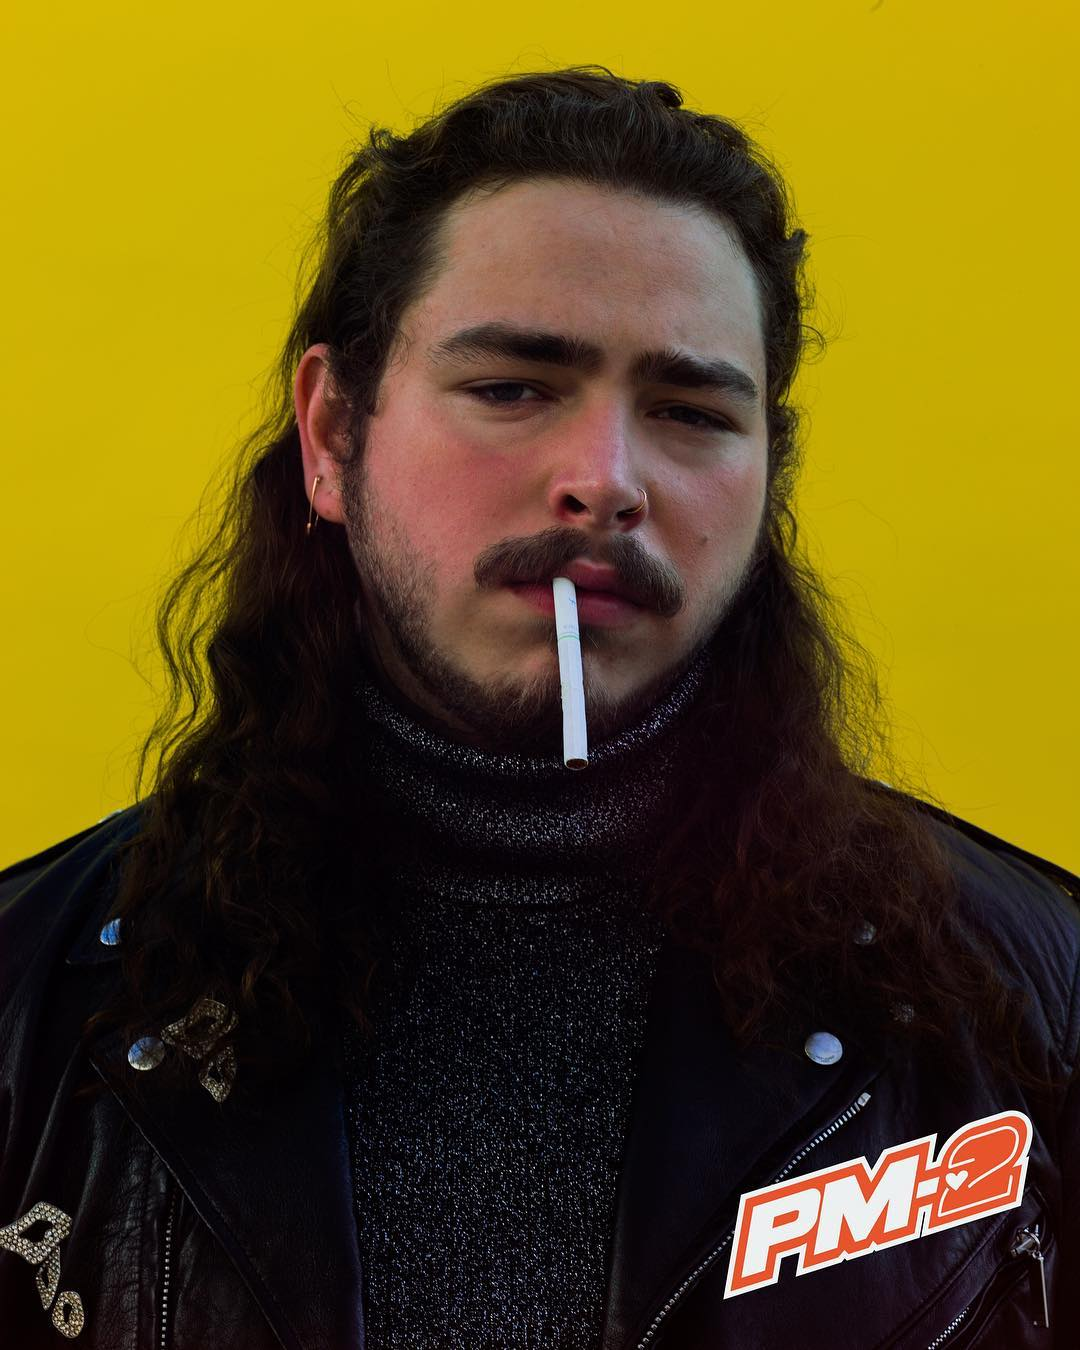 Dowload Song Of Better Now By Post Malone: Um Dos Maiores Nomes Do Hip Hop, Post Malone Lança